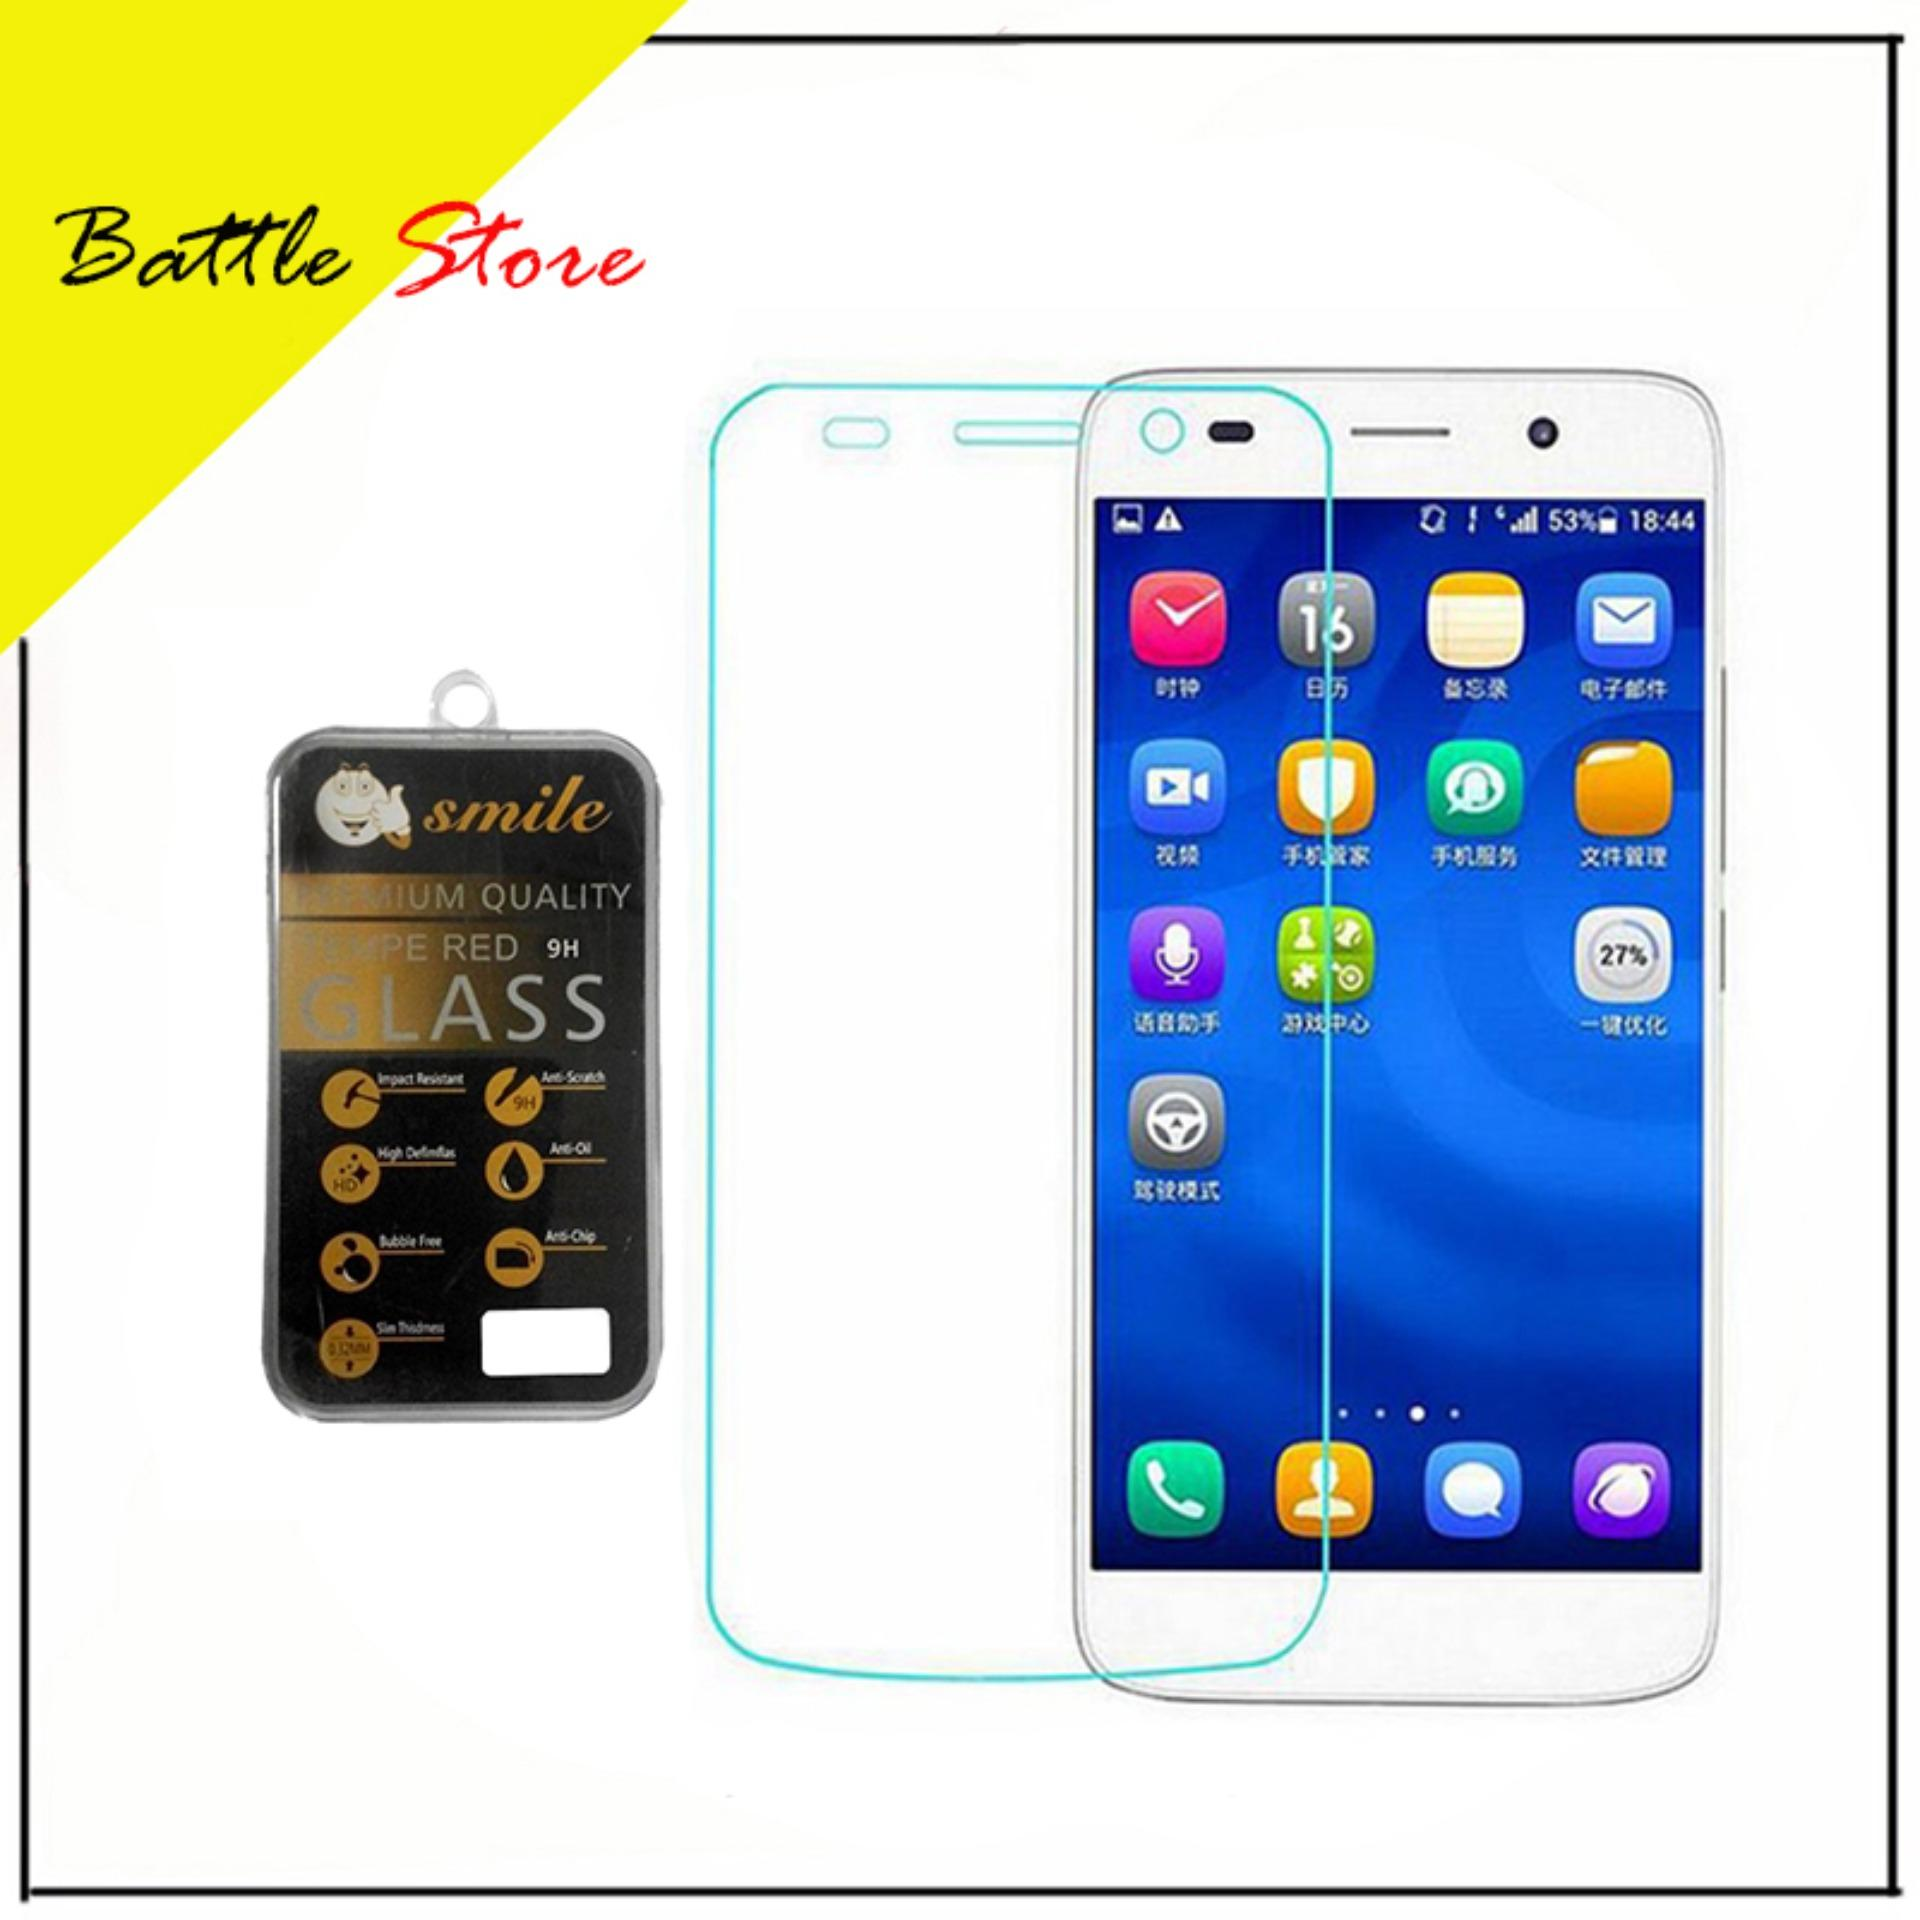 Huawei Y6 2017 Smile Screen Protector Tempered Glass / Anti Gores Kaca - White Clear